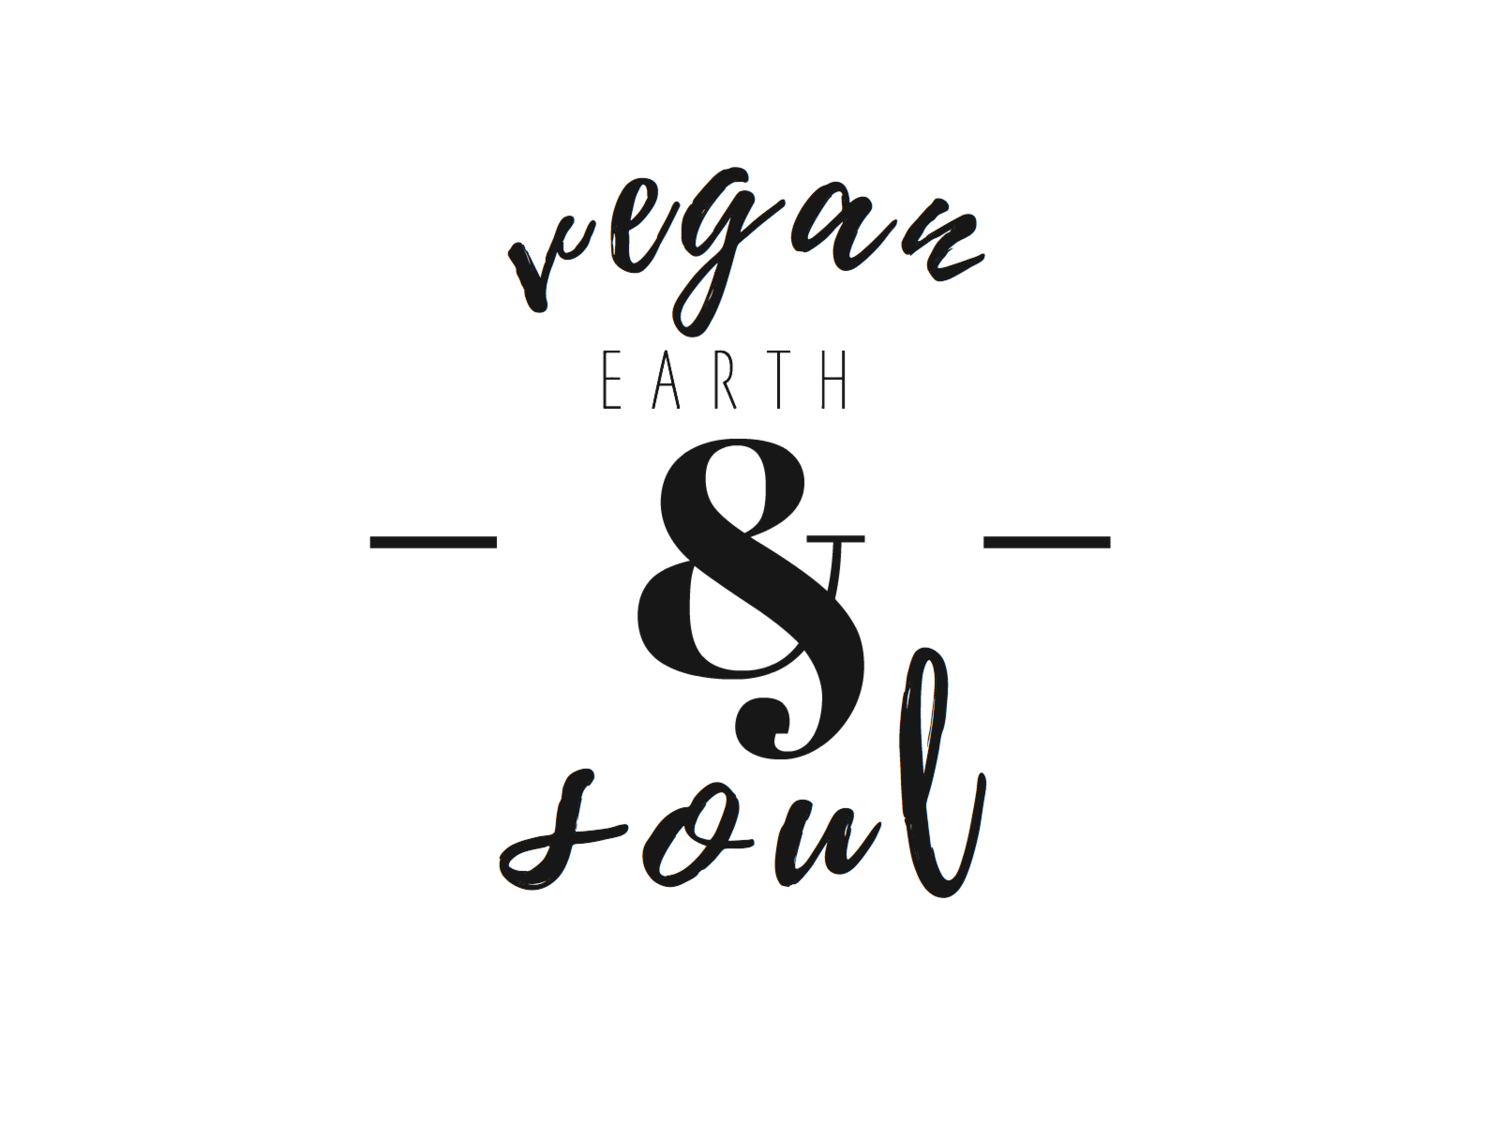 Vegan Earth & Soul